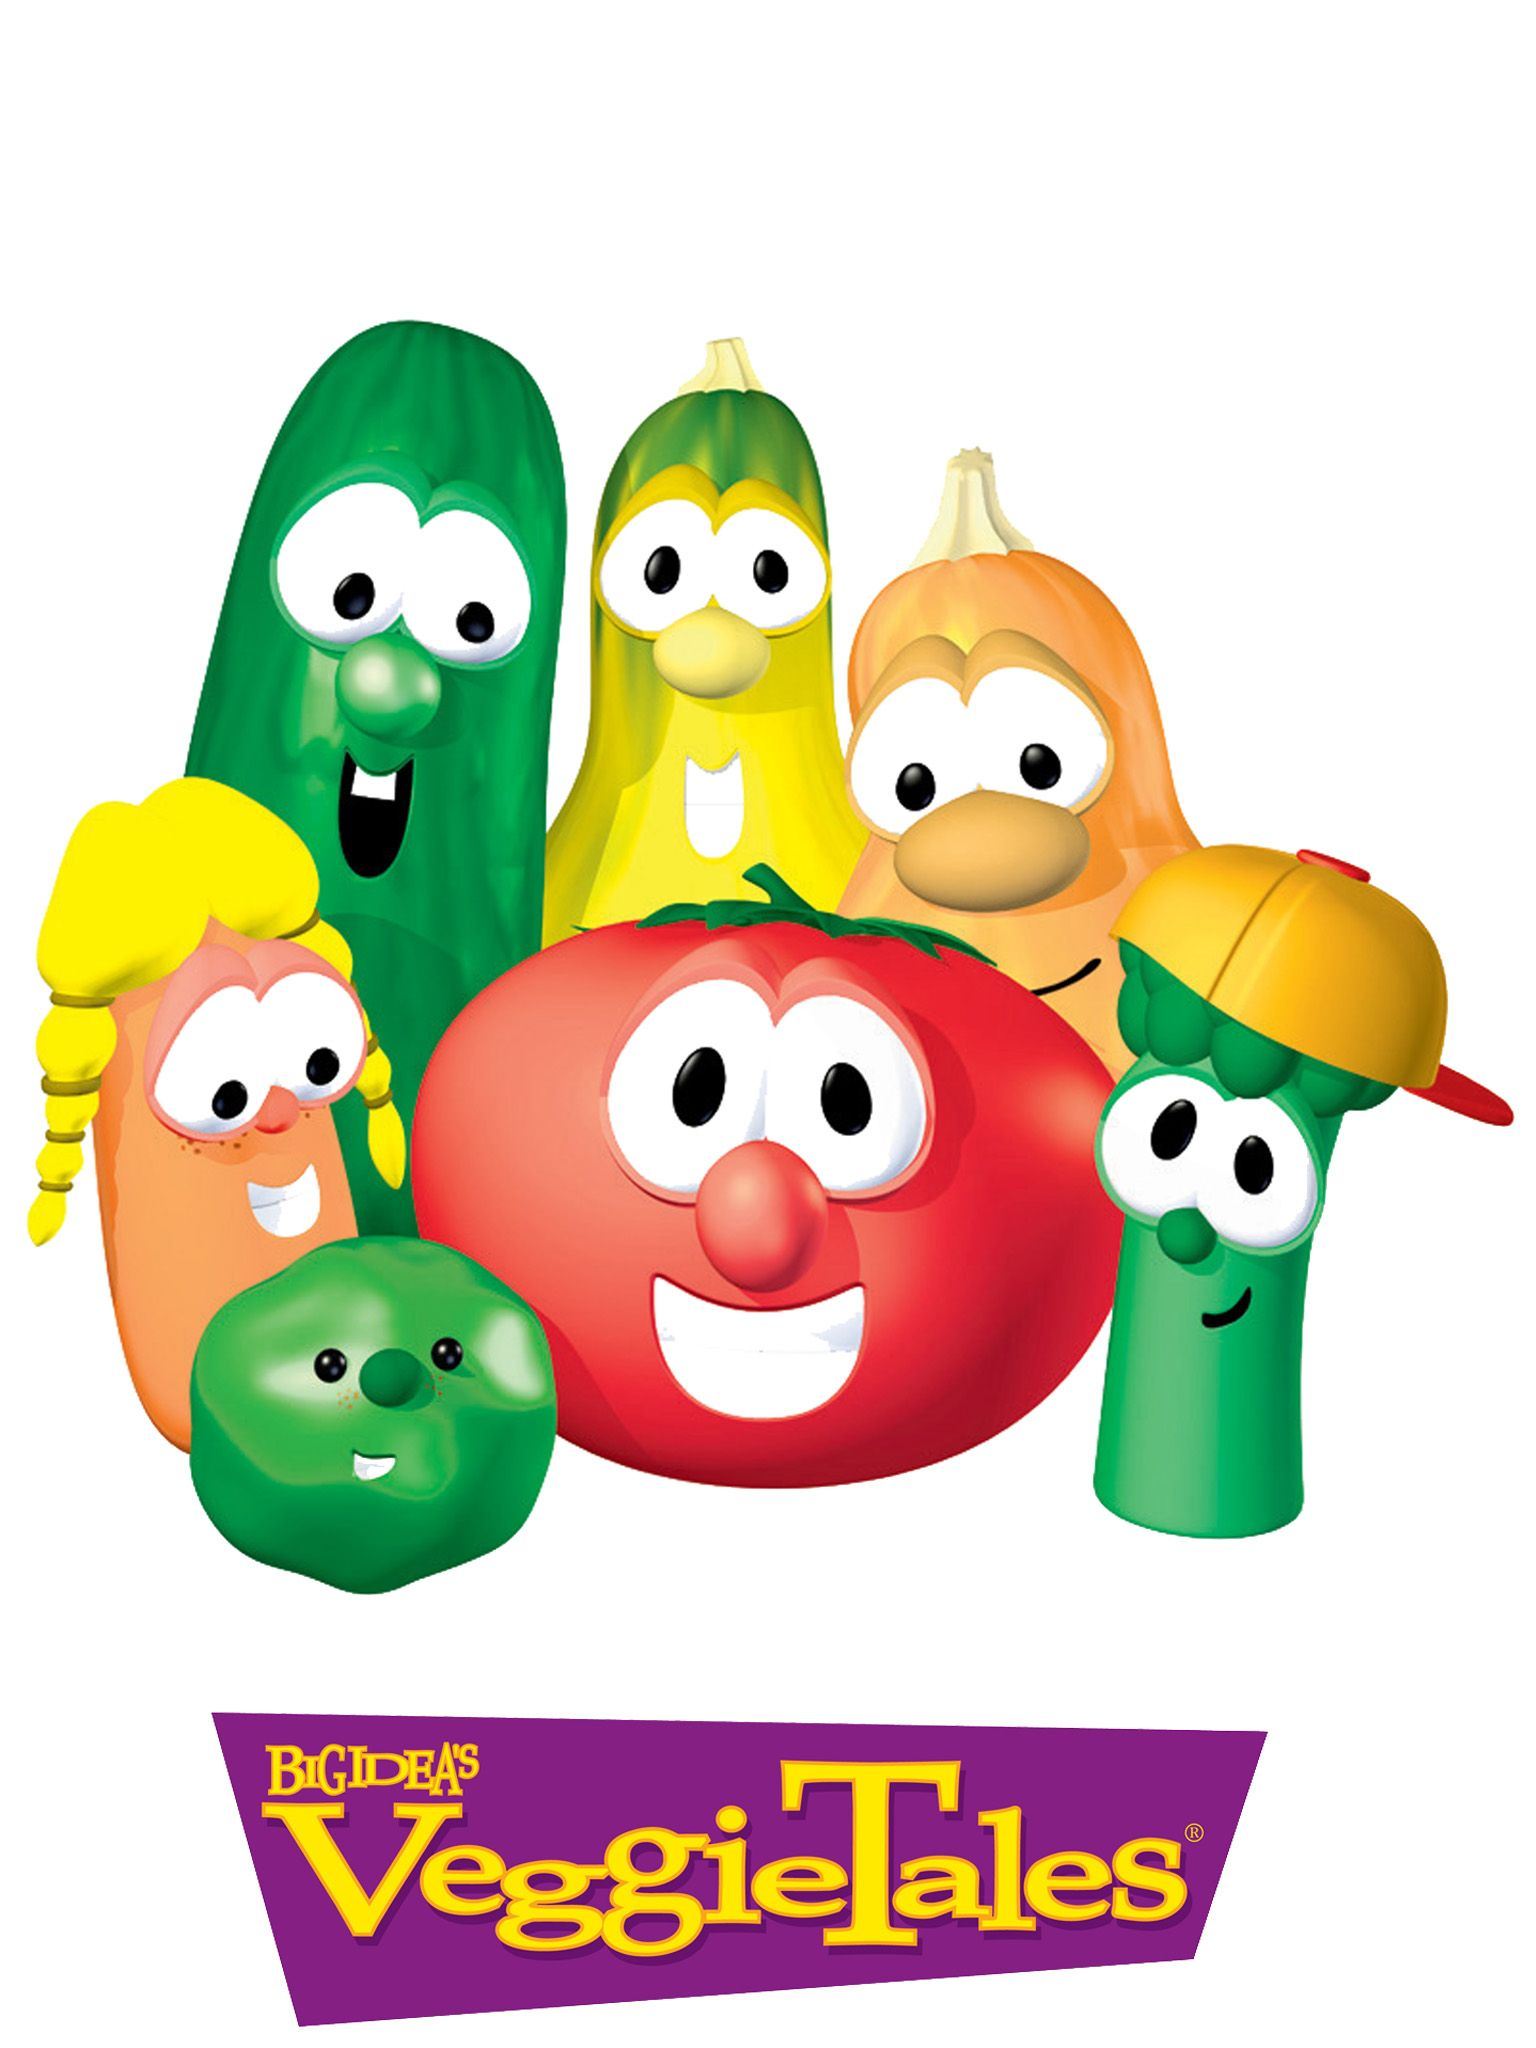 VeggieTales TV Show: News, Videos, Full Episodes and More.